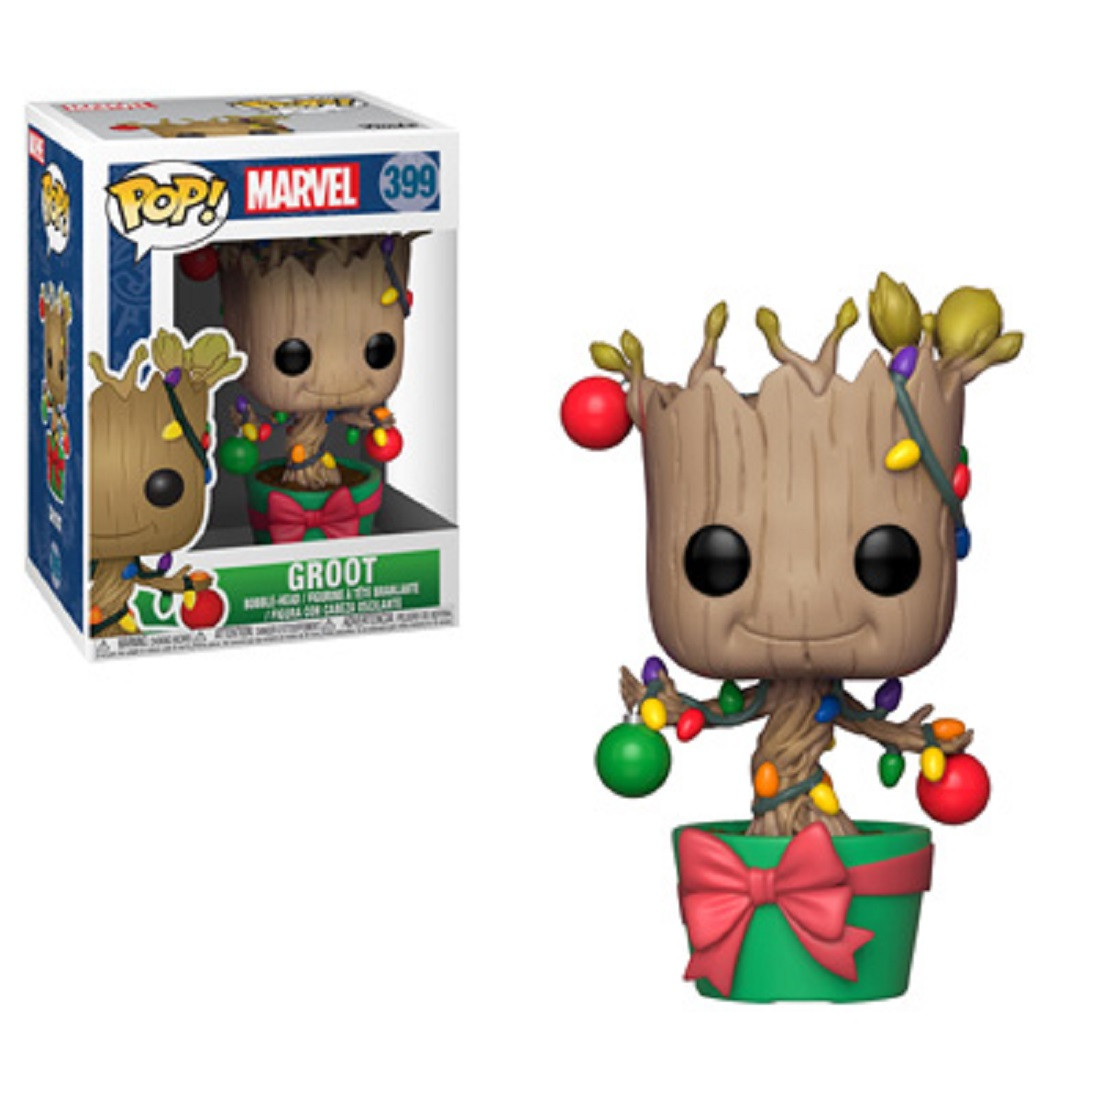 Funko POP - Marvel Holiday - Groot - Vinyl Collectible Figure - w Lights and Ornaments